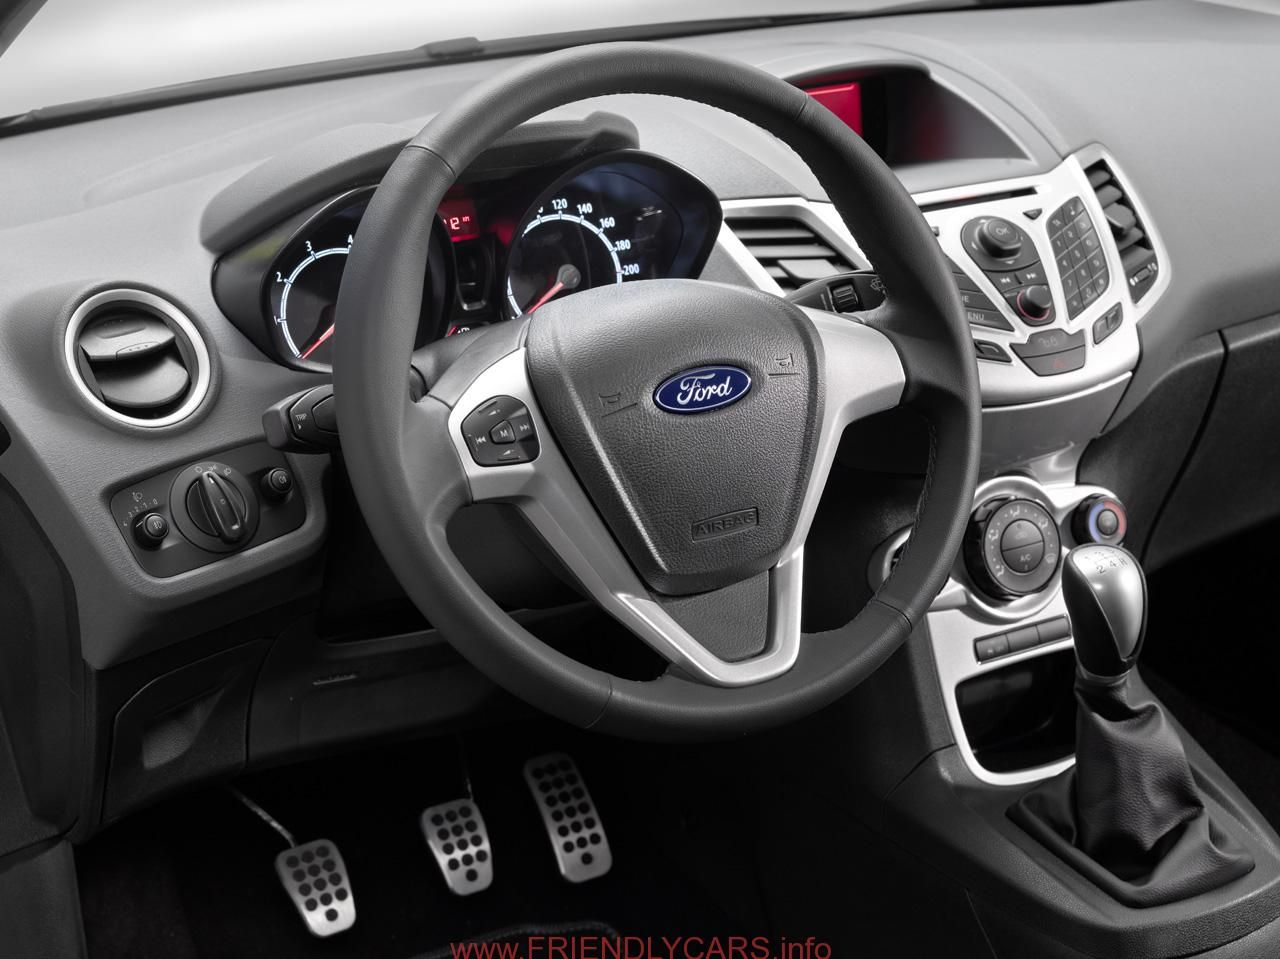 Awesome Ford Fiesta 2012 Interior Car Images Hd New Elegant Car